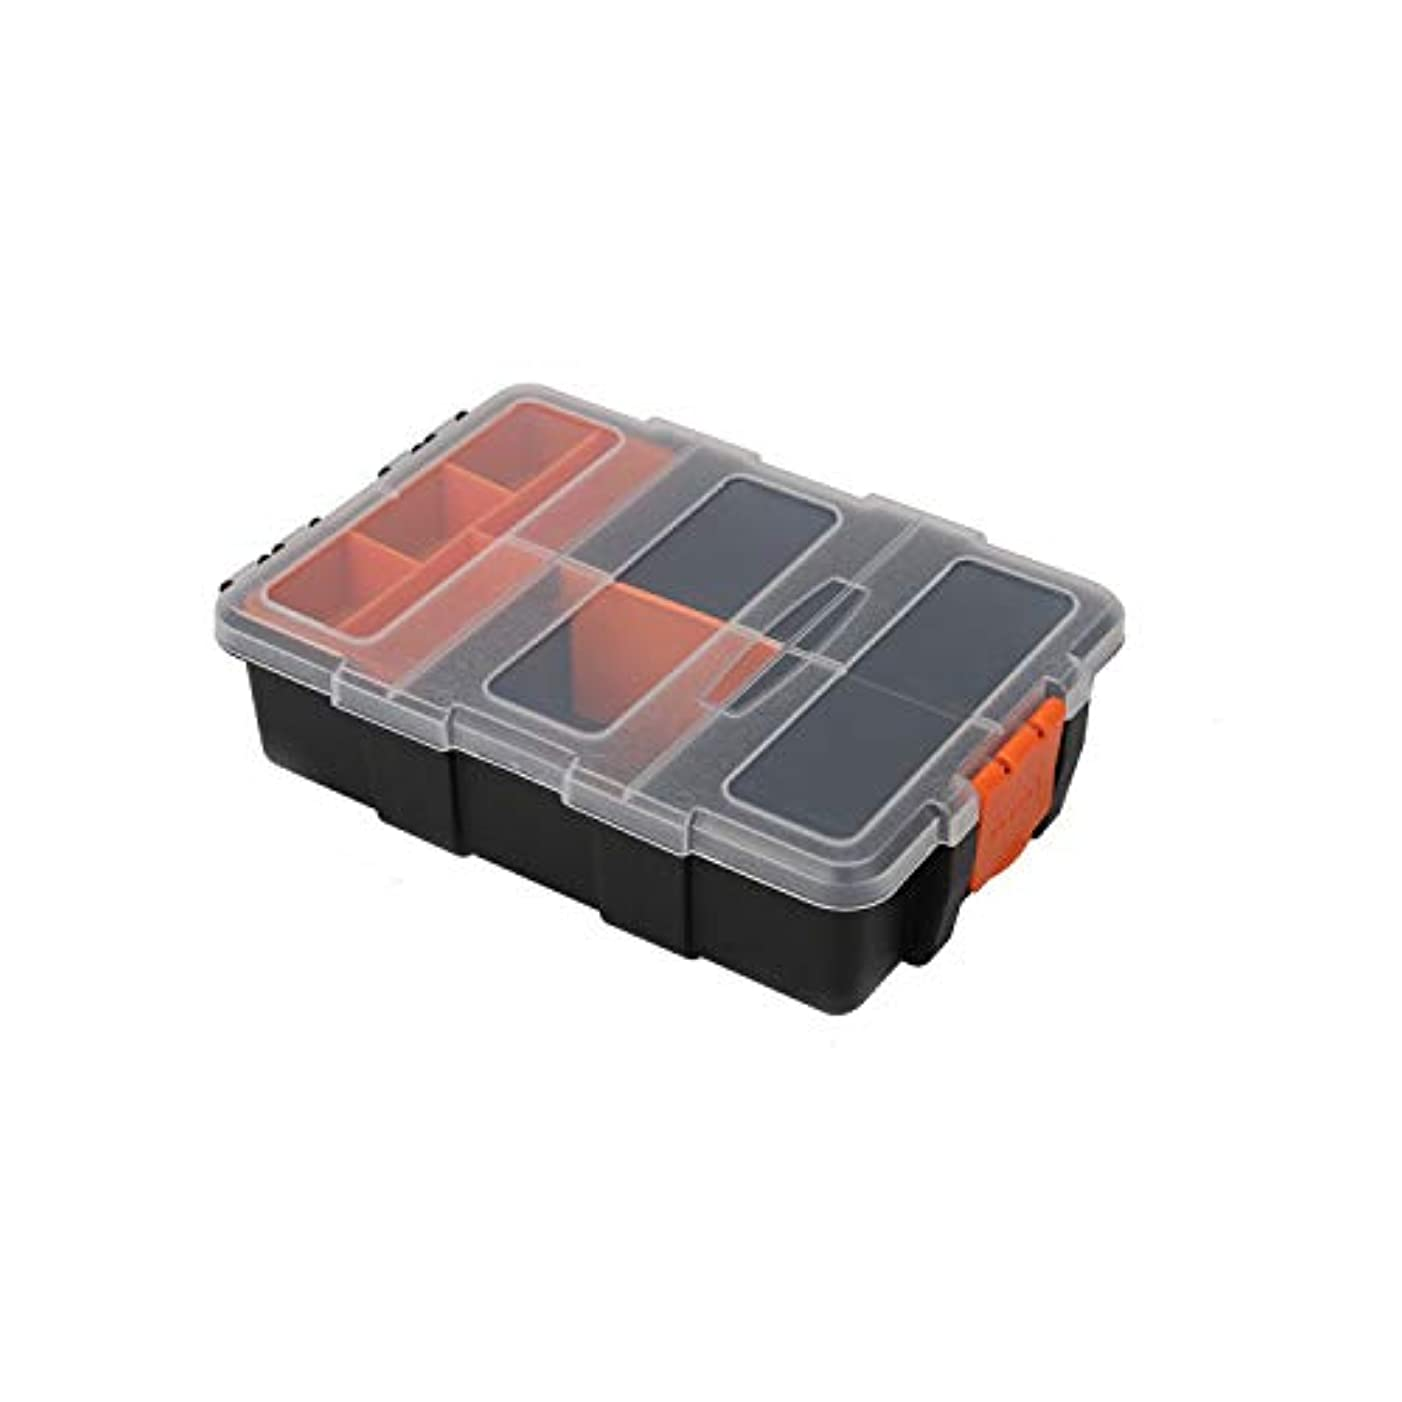 HRDiDiu Plastic Storage Box Containers with Clear Lid for Craft,Tool,Parts,Fishing,Hardware,Screws,Nuts,Bolts,Beads,Jewelry,Small Accessories,Organizer with 11 Compartments